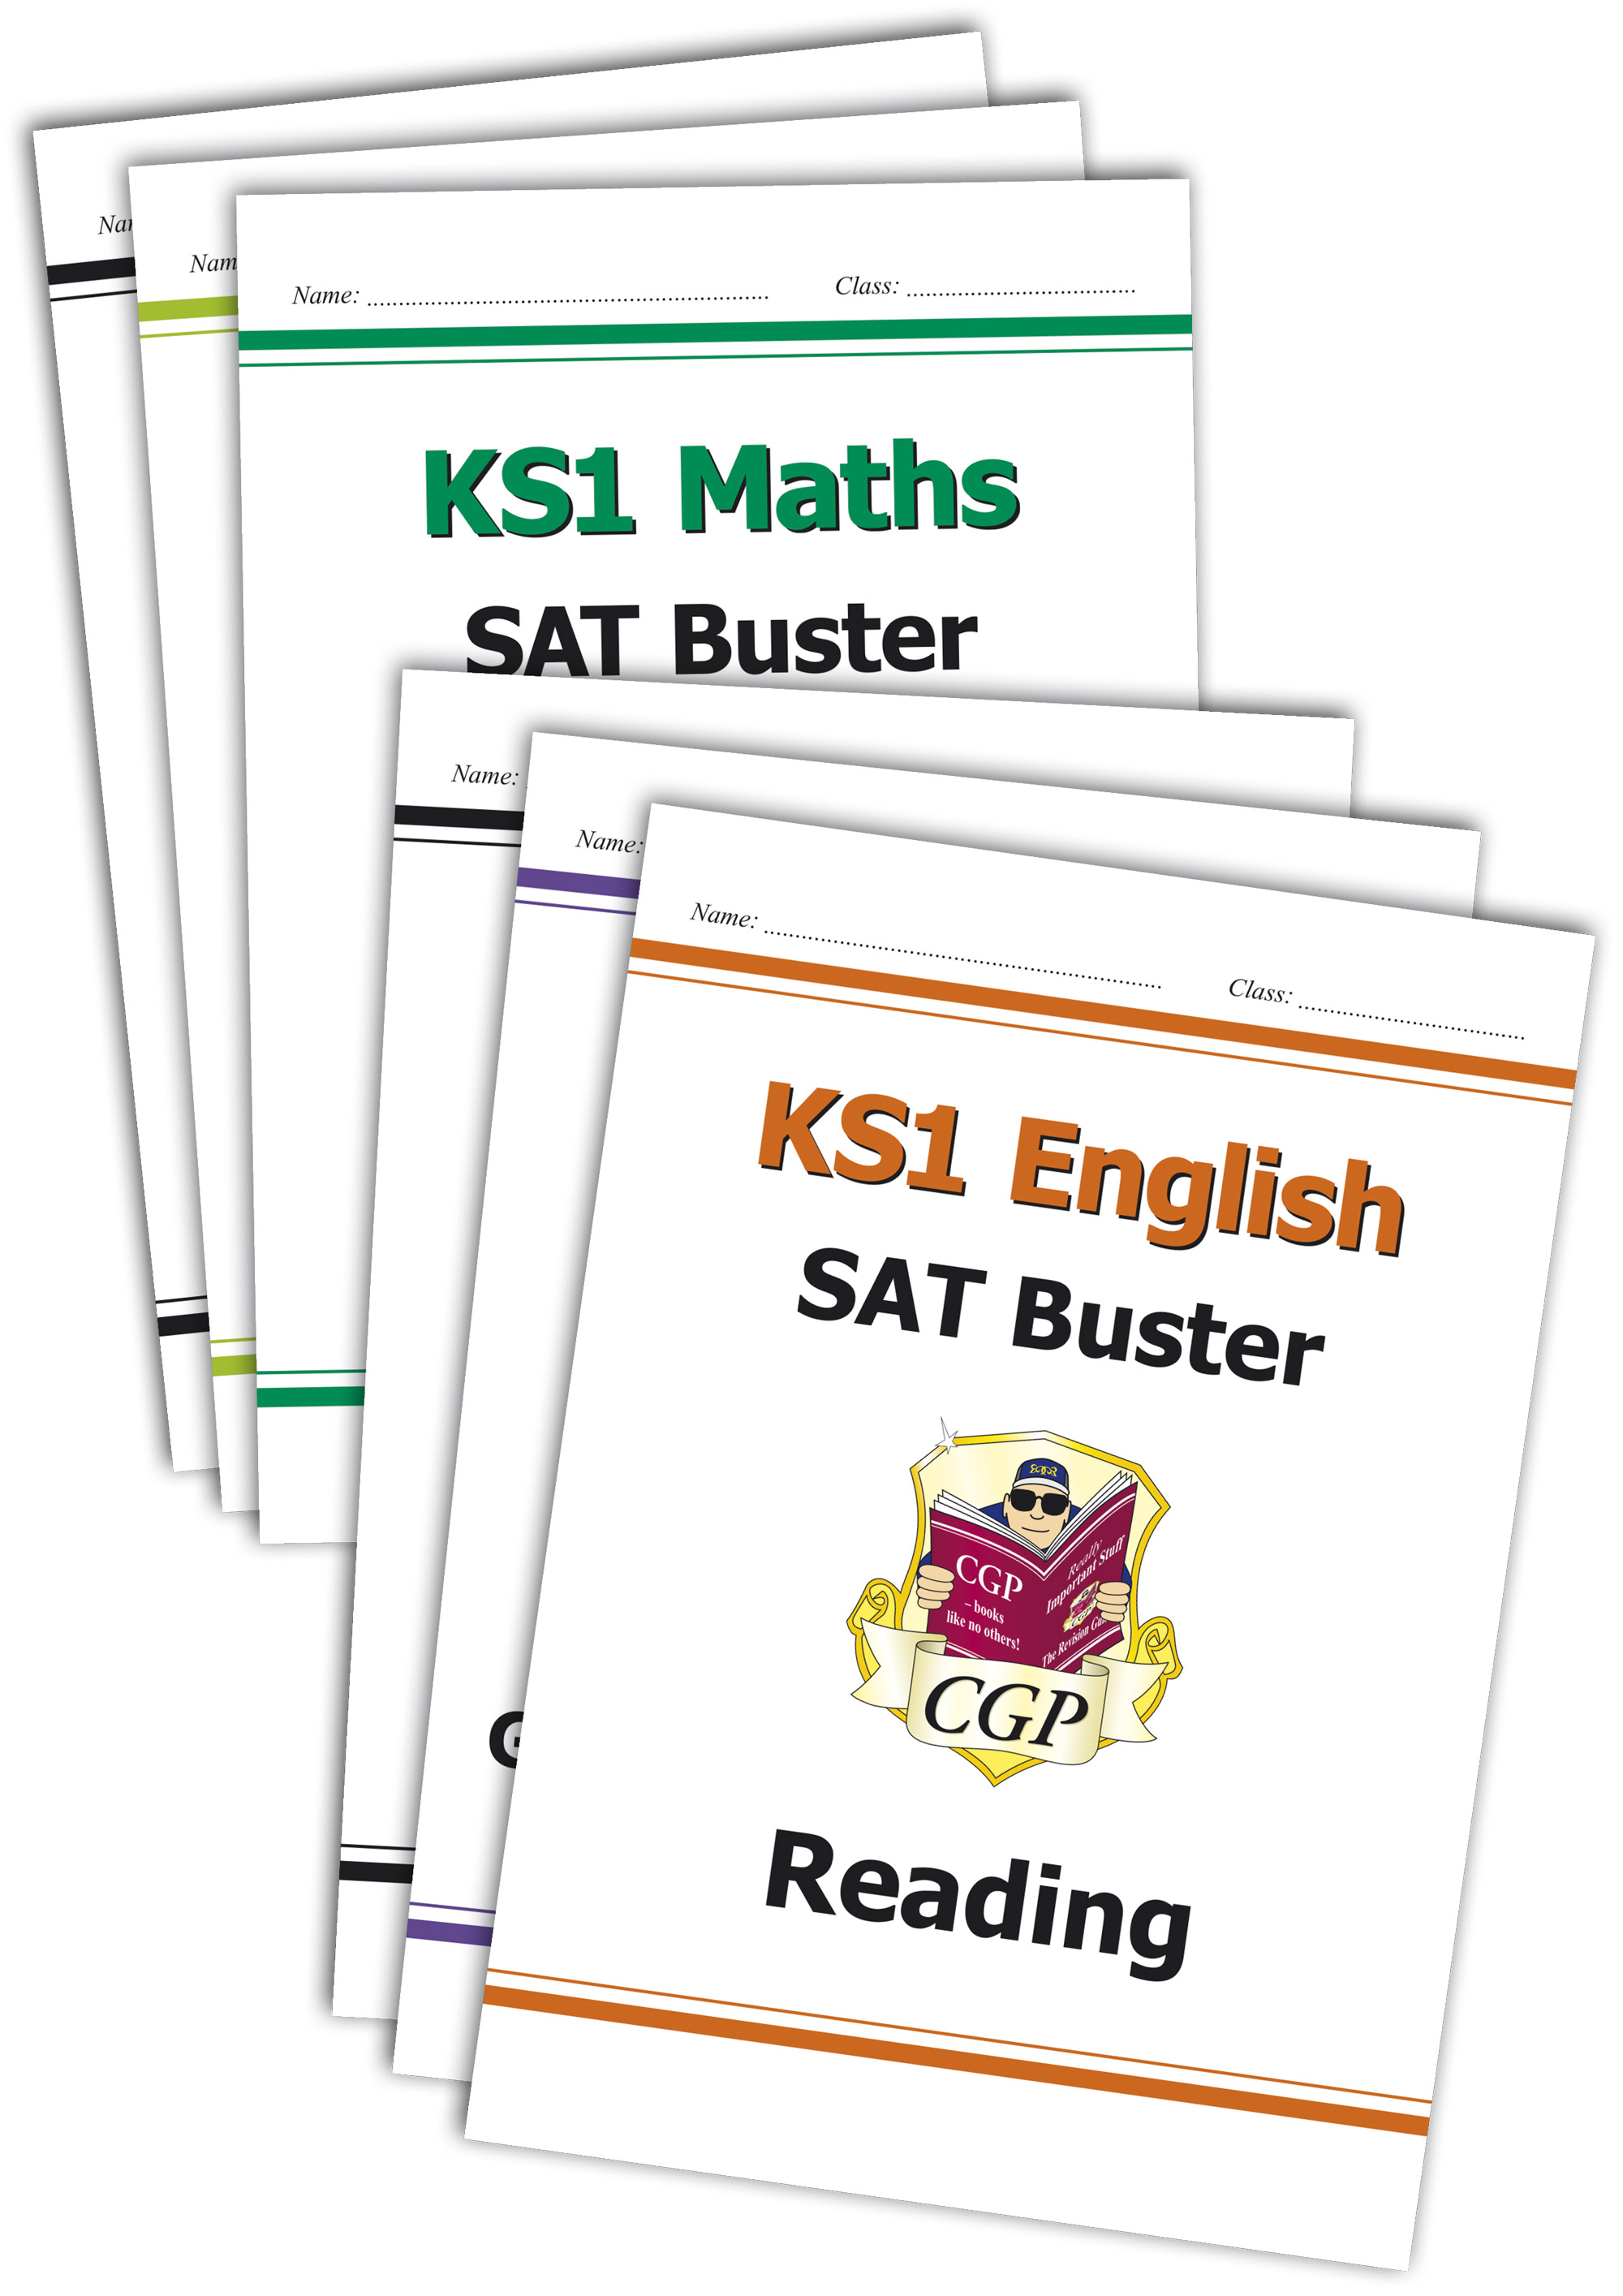 EM2B11 - Complete KS1 Maths & English SAT Buster Bundle - incl answers (for the 2020 tests)